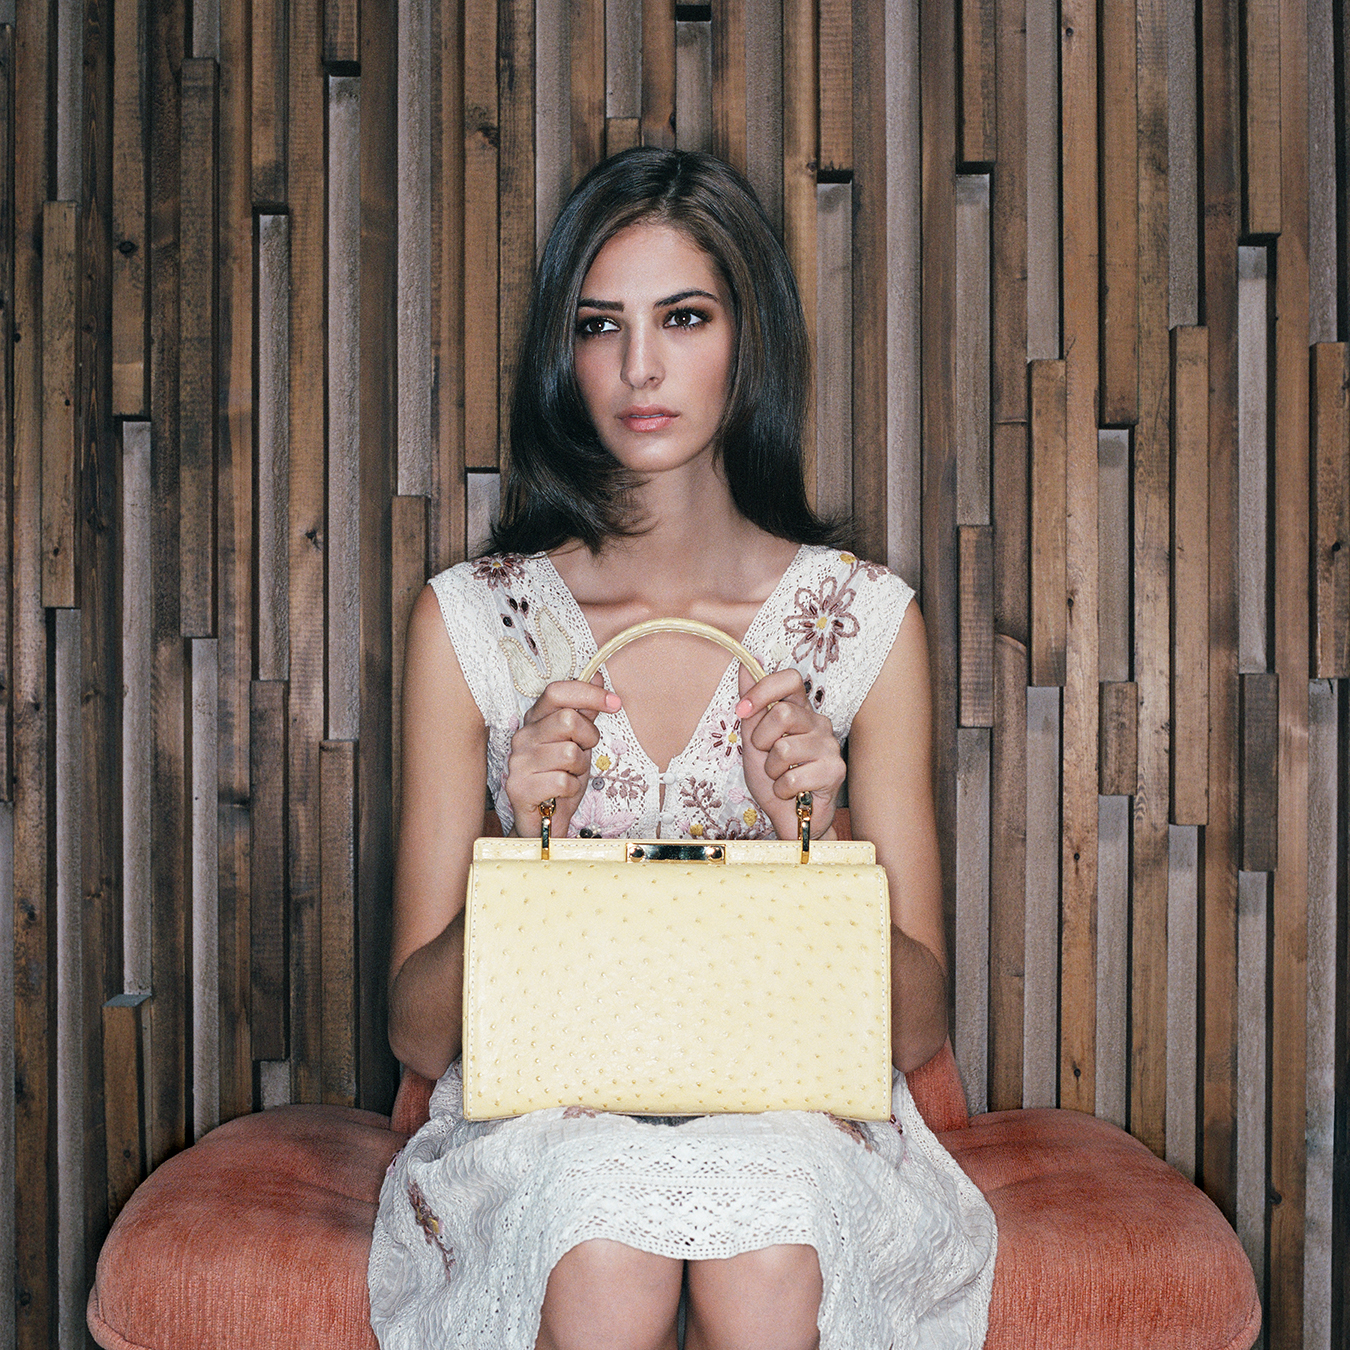 Tony_Ward_fashion_photography_Neiman_Marcus_handbags_catalogue_location_Palm_Springs_California_model_Emina_Cunmulaj